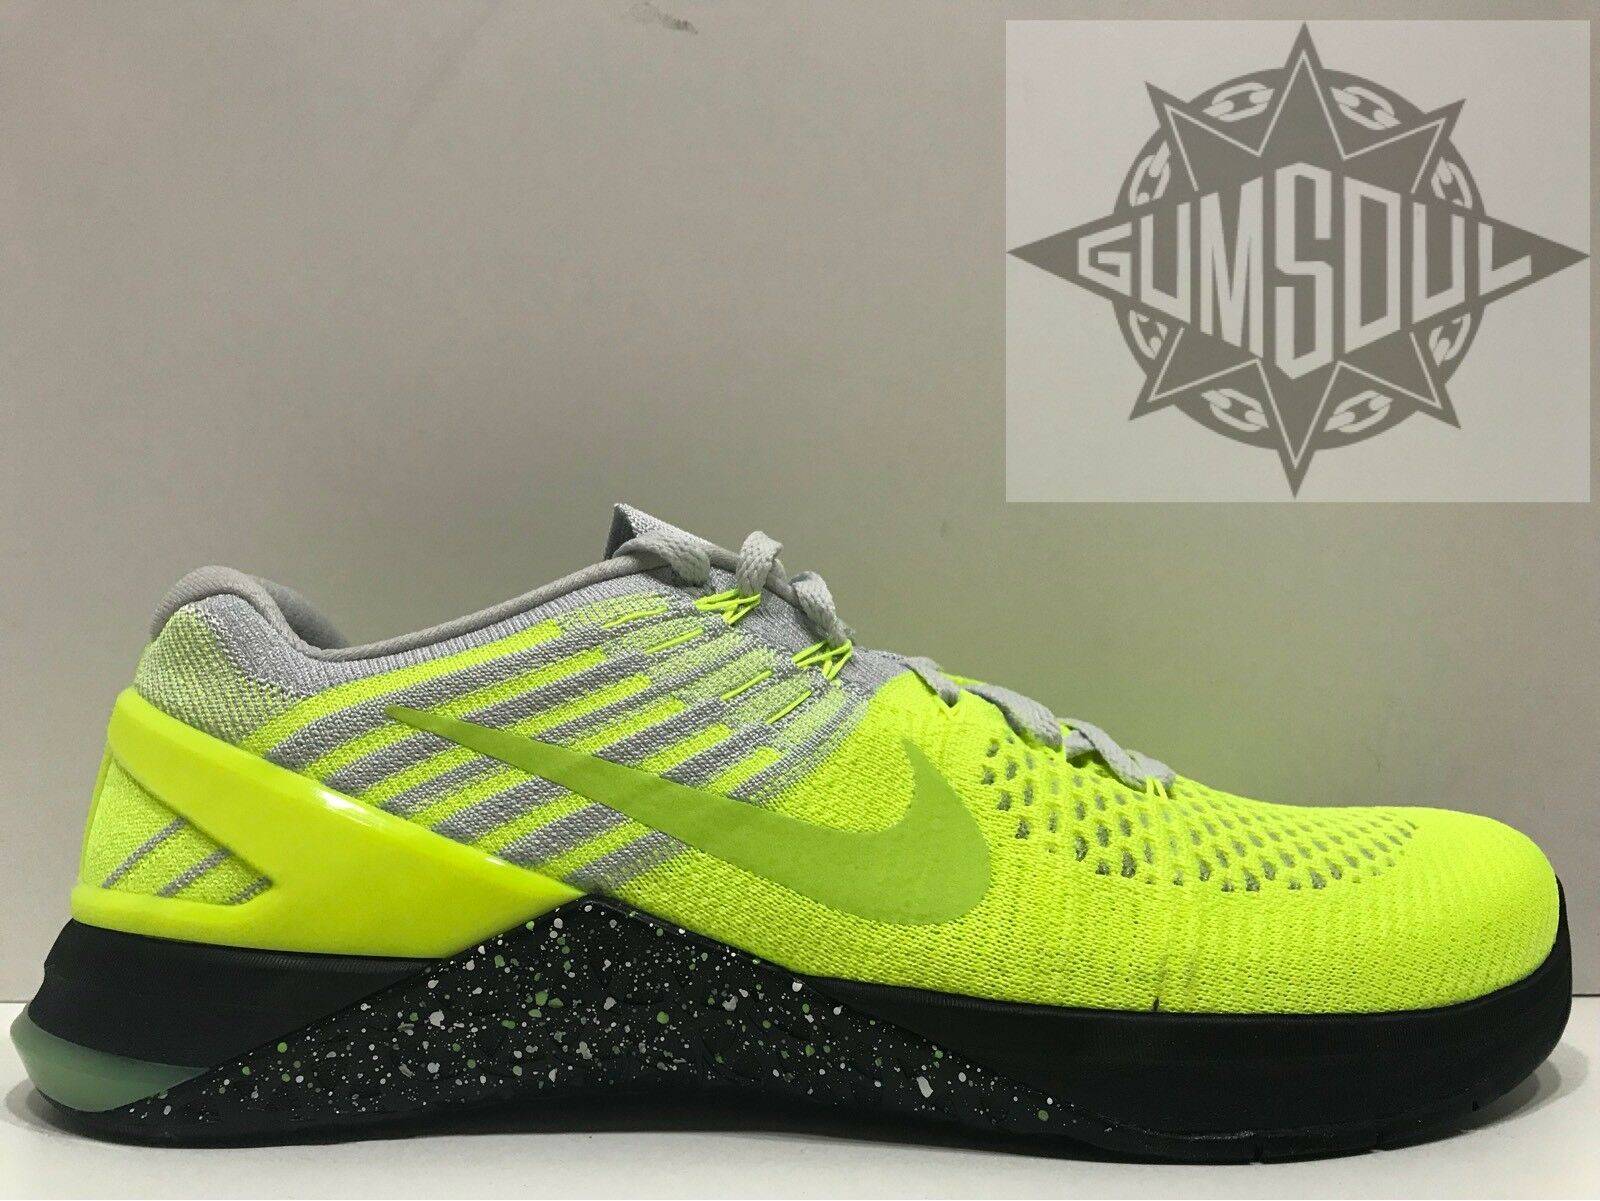 NIKE METCON DSX FLYKNIT VOLT GHOST GREEN PURE PLATINUM BLACK 852930 701 Price reduction Comfortable and good-looking Seasonal price cuts, discount benefits